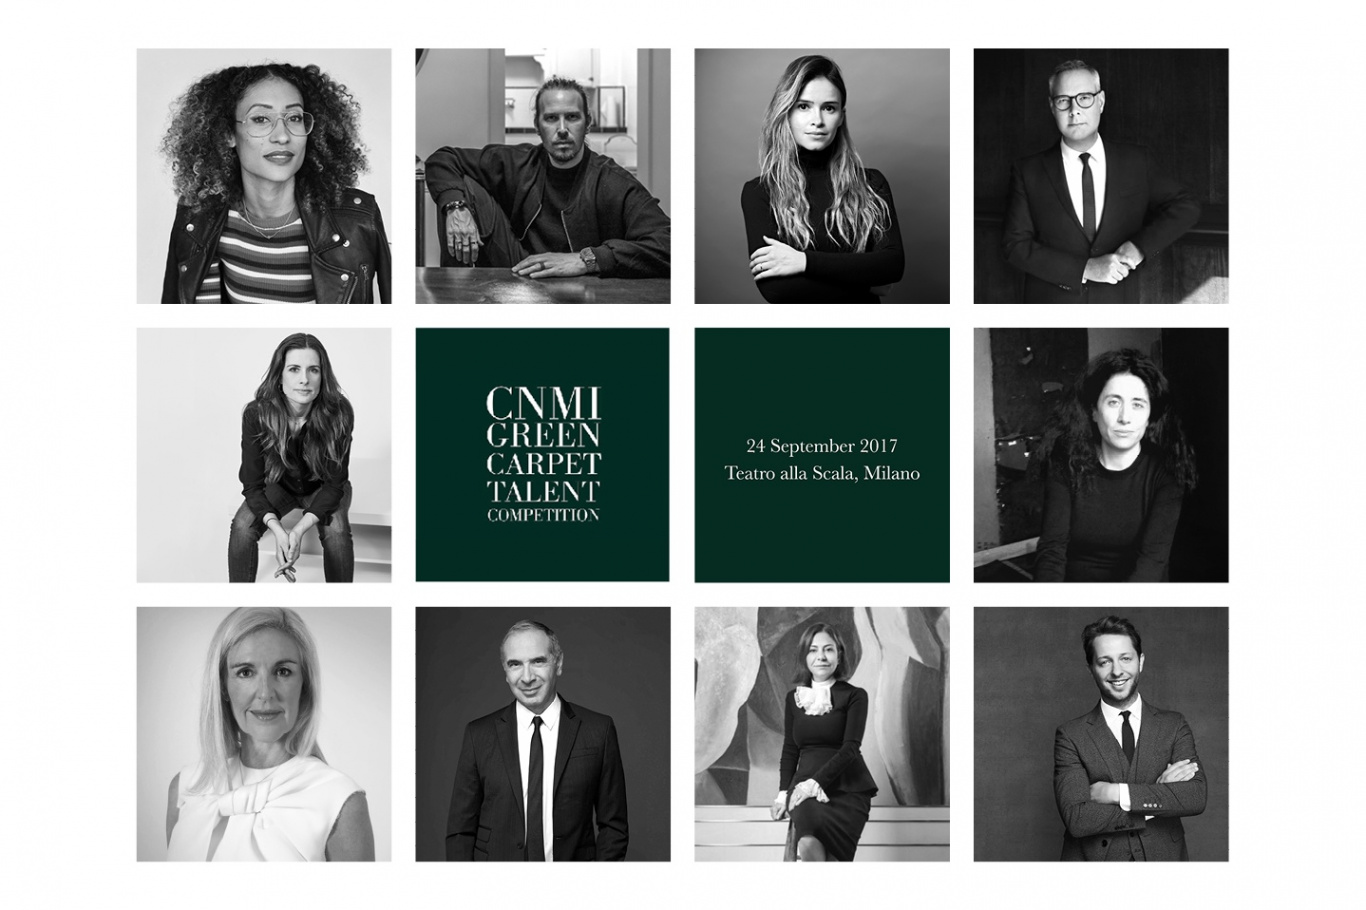 The GCC Fashion Awards, Italia announces international judging panel and 10 semi-finalists for the CNMI Green Carpet Talent Competition